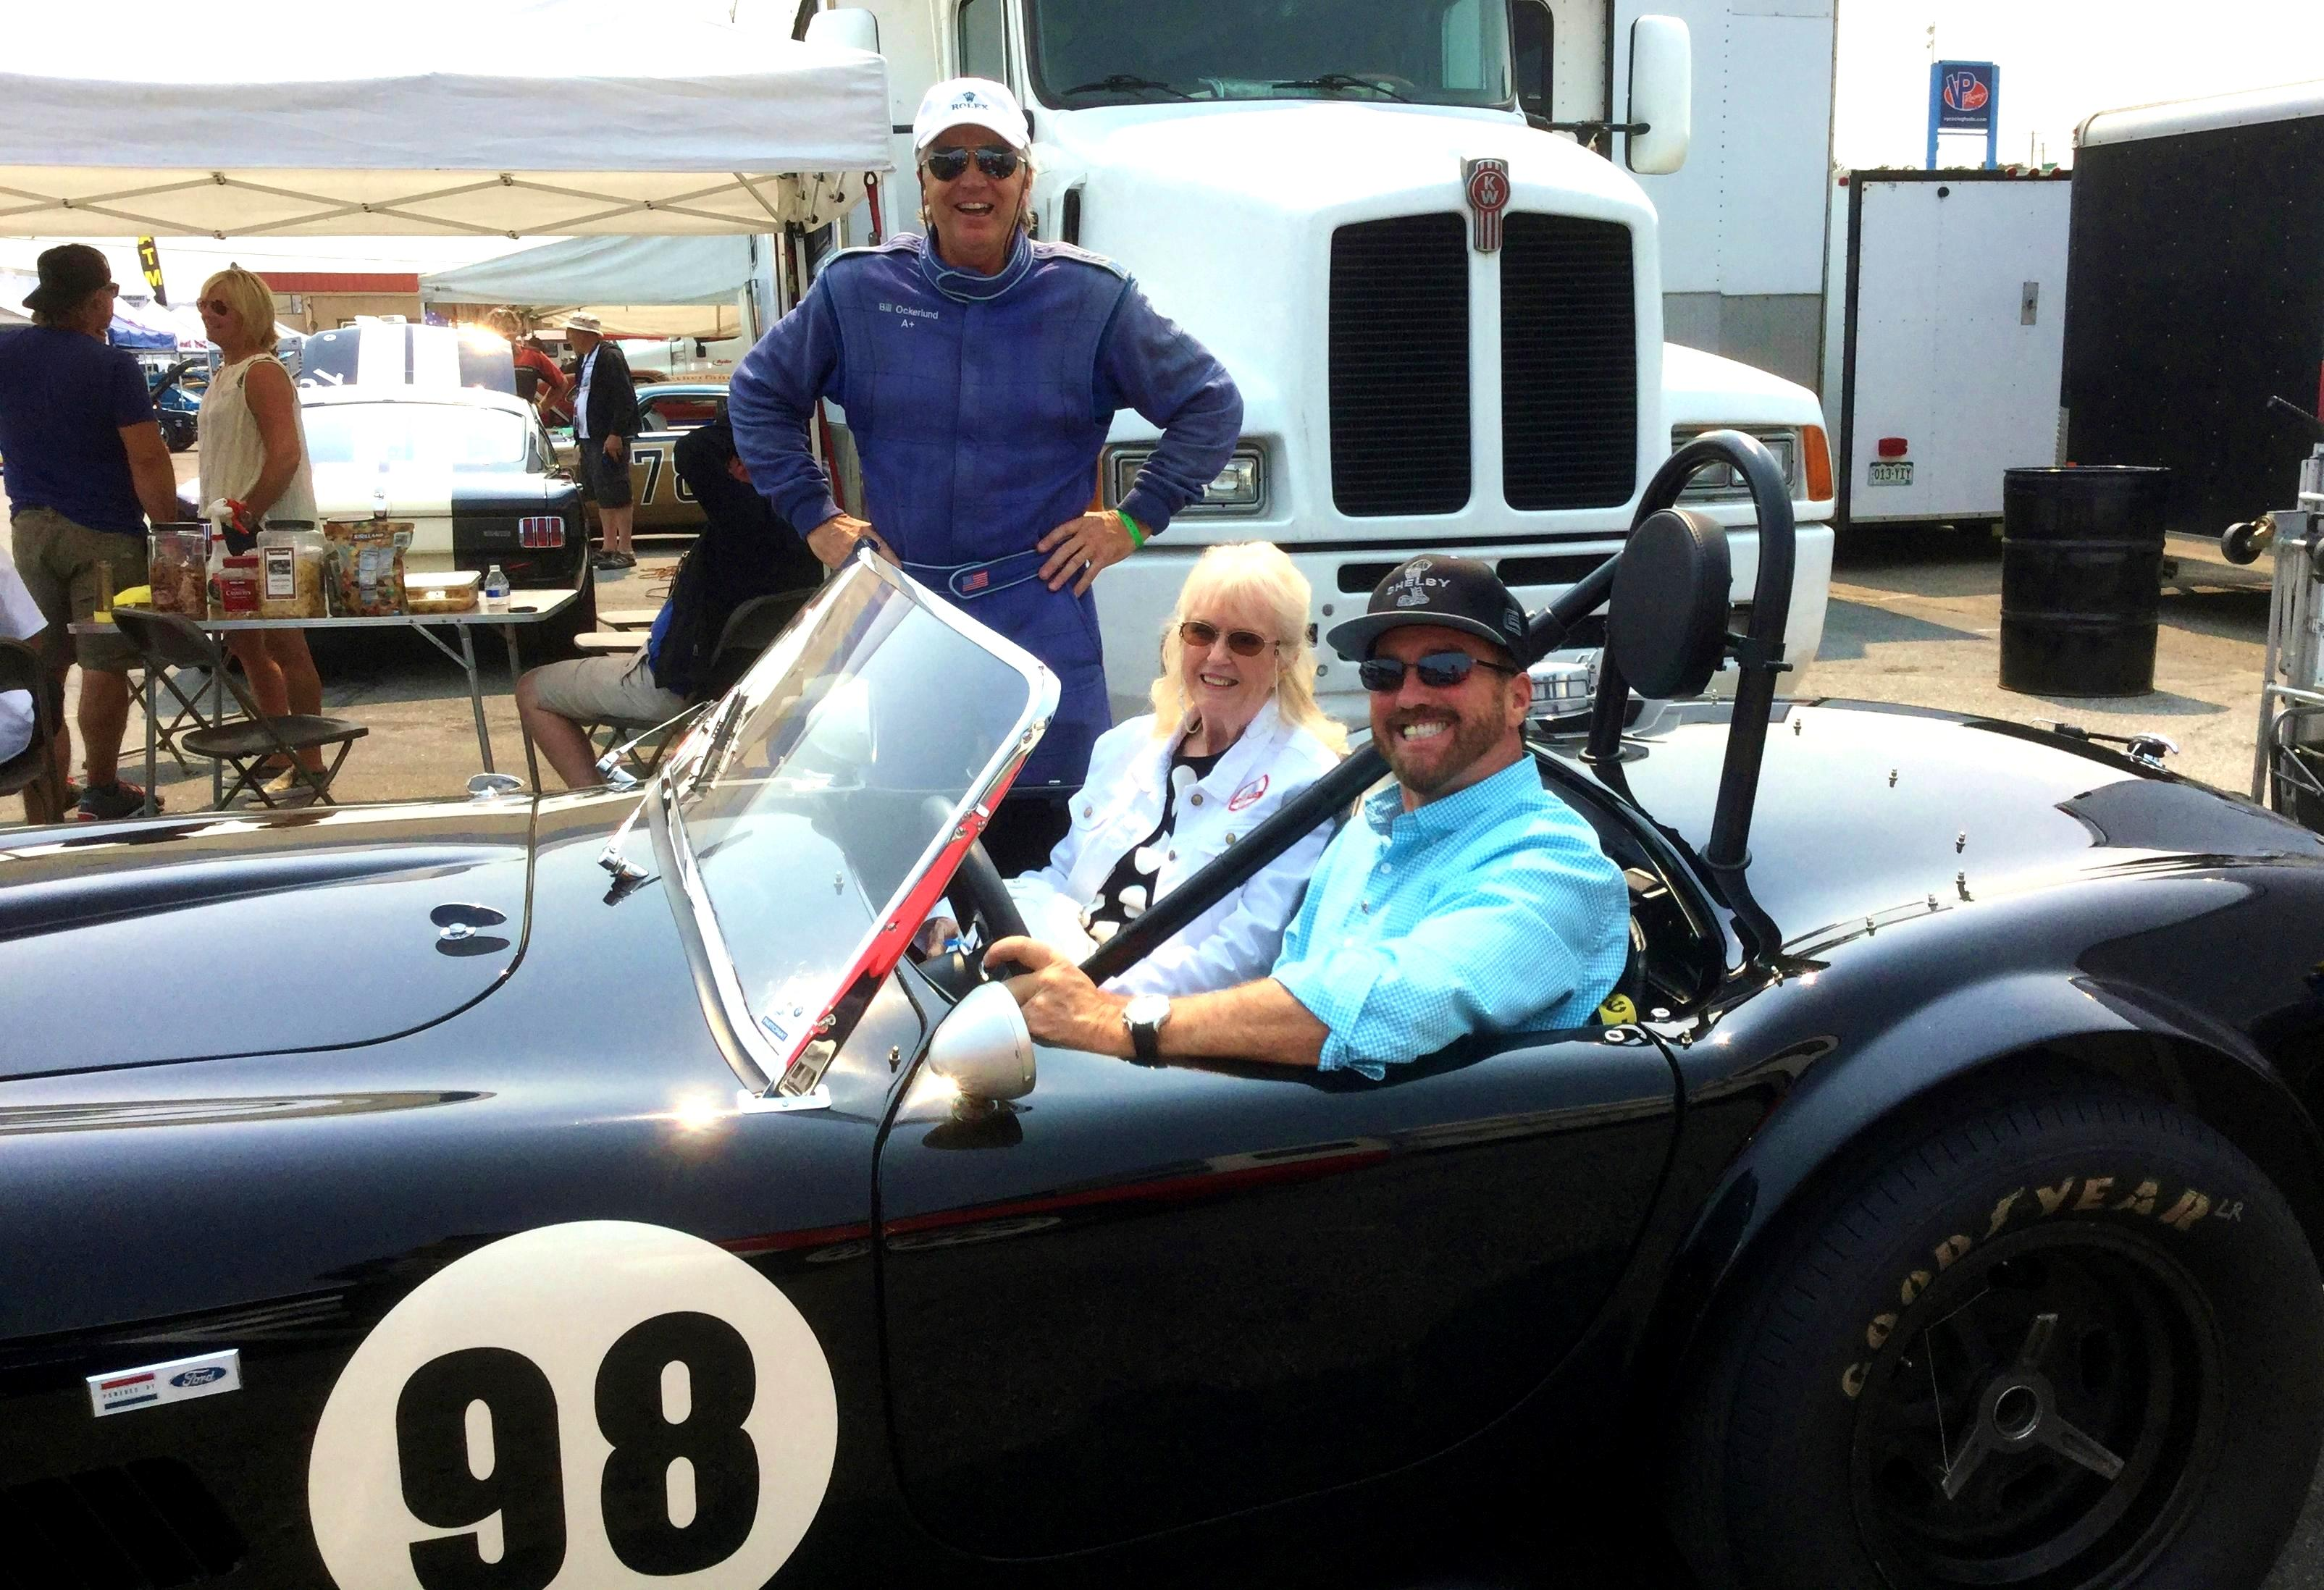 Dave MacDonald races Shelby Cobra 260 to first ever win at Riverside